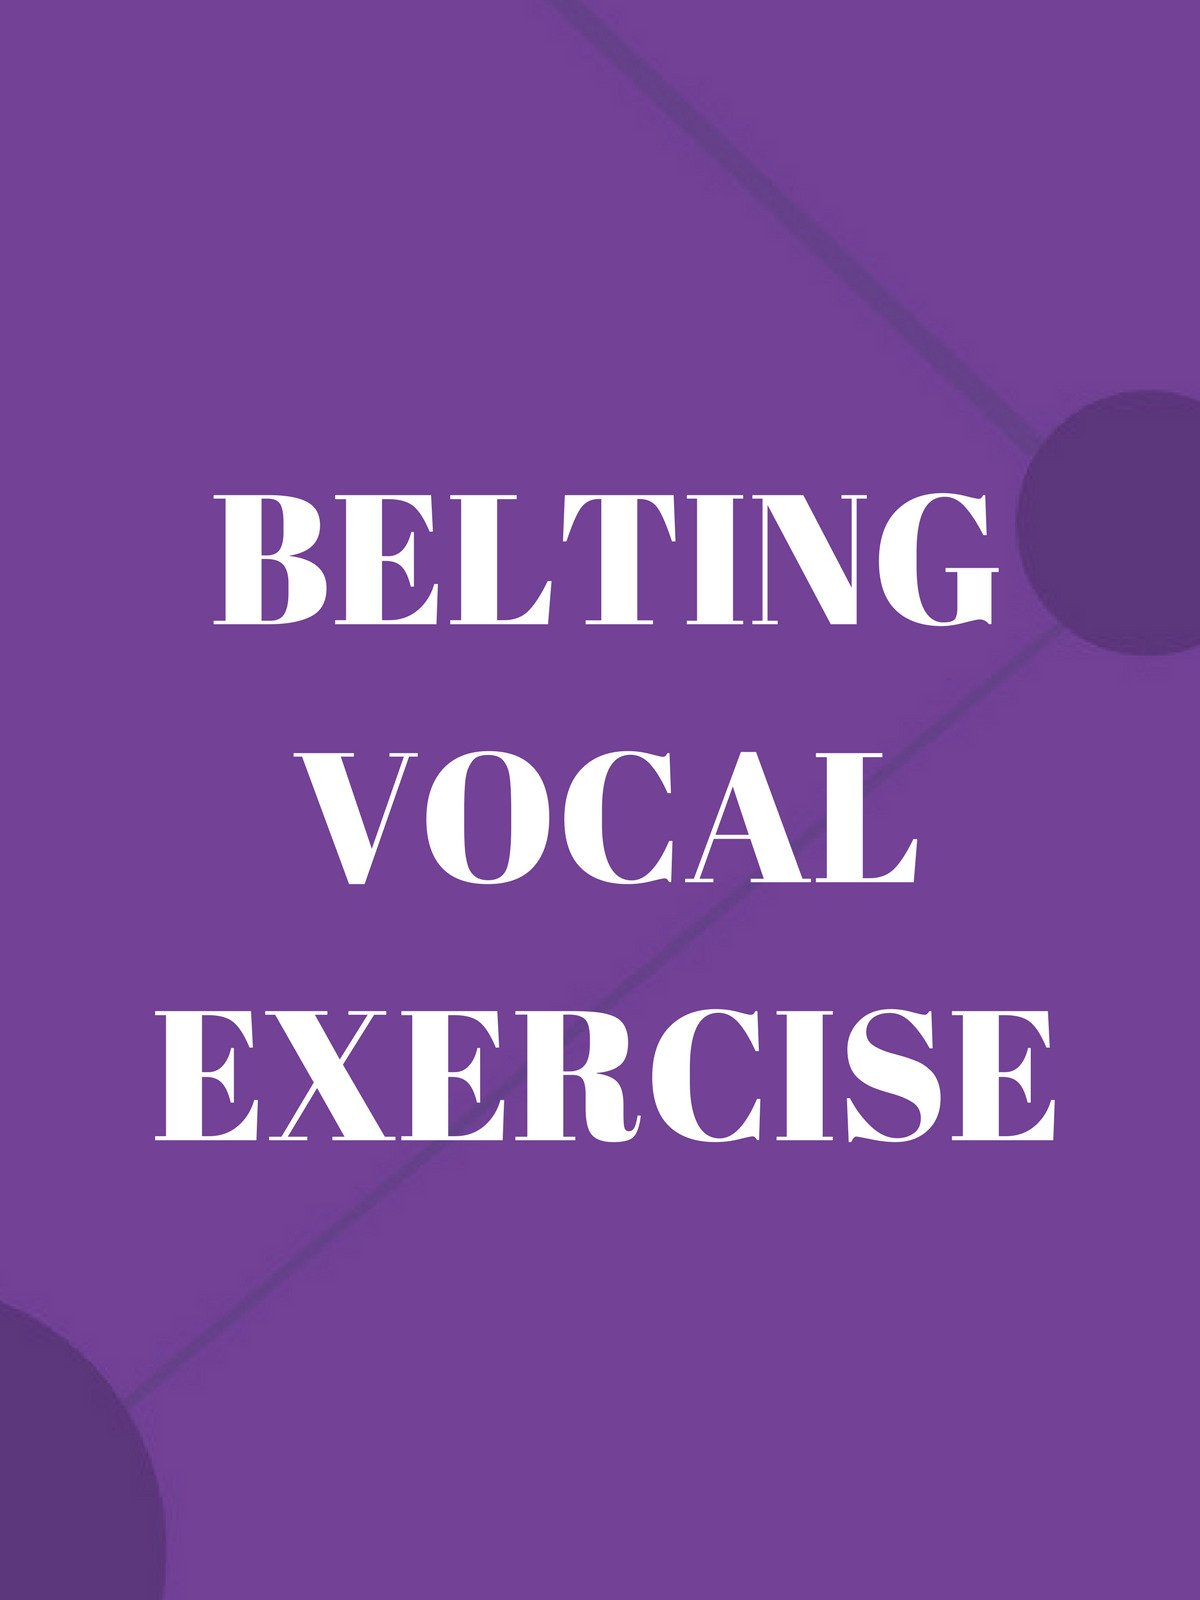 Belting Vocal Exercise